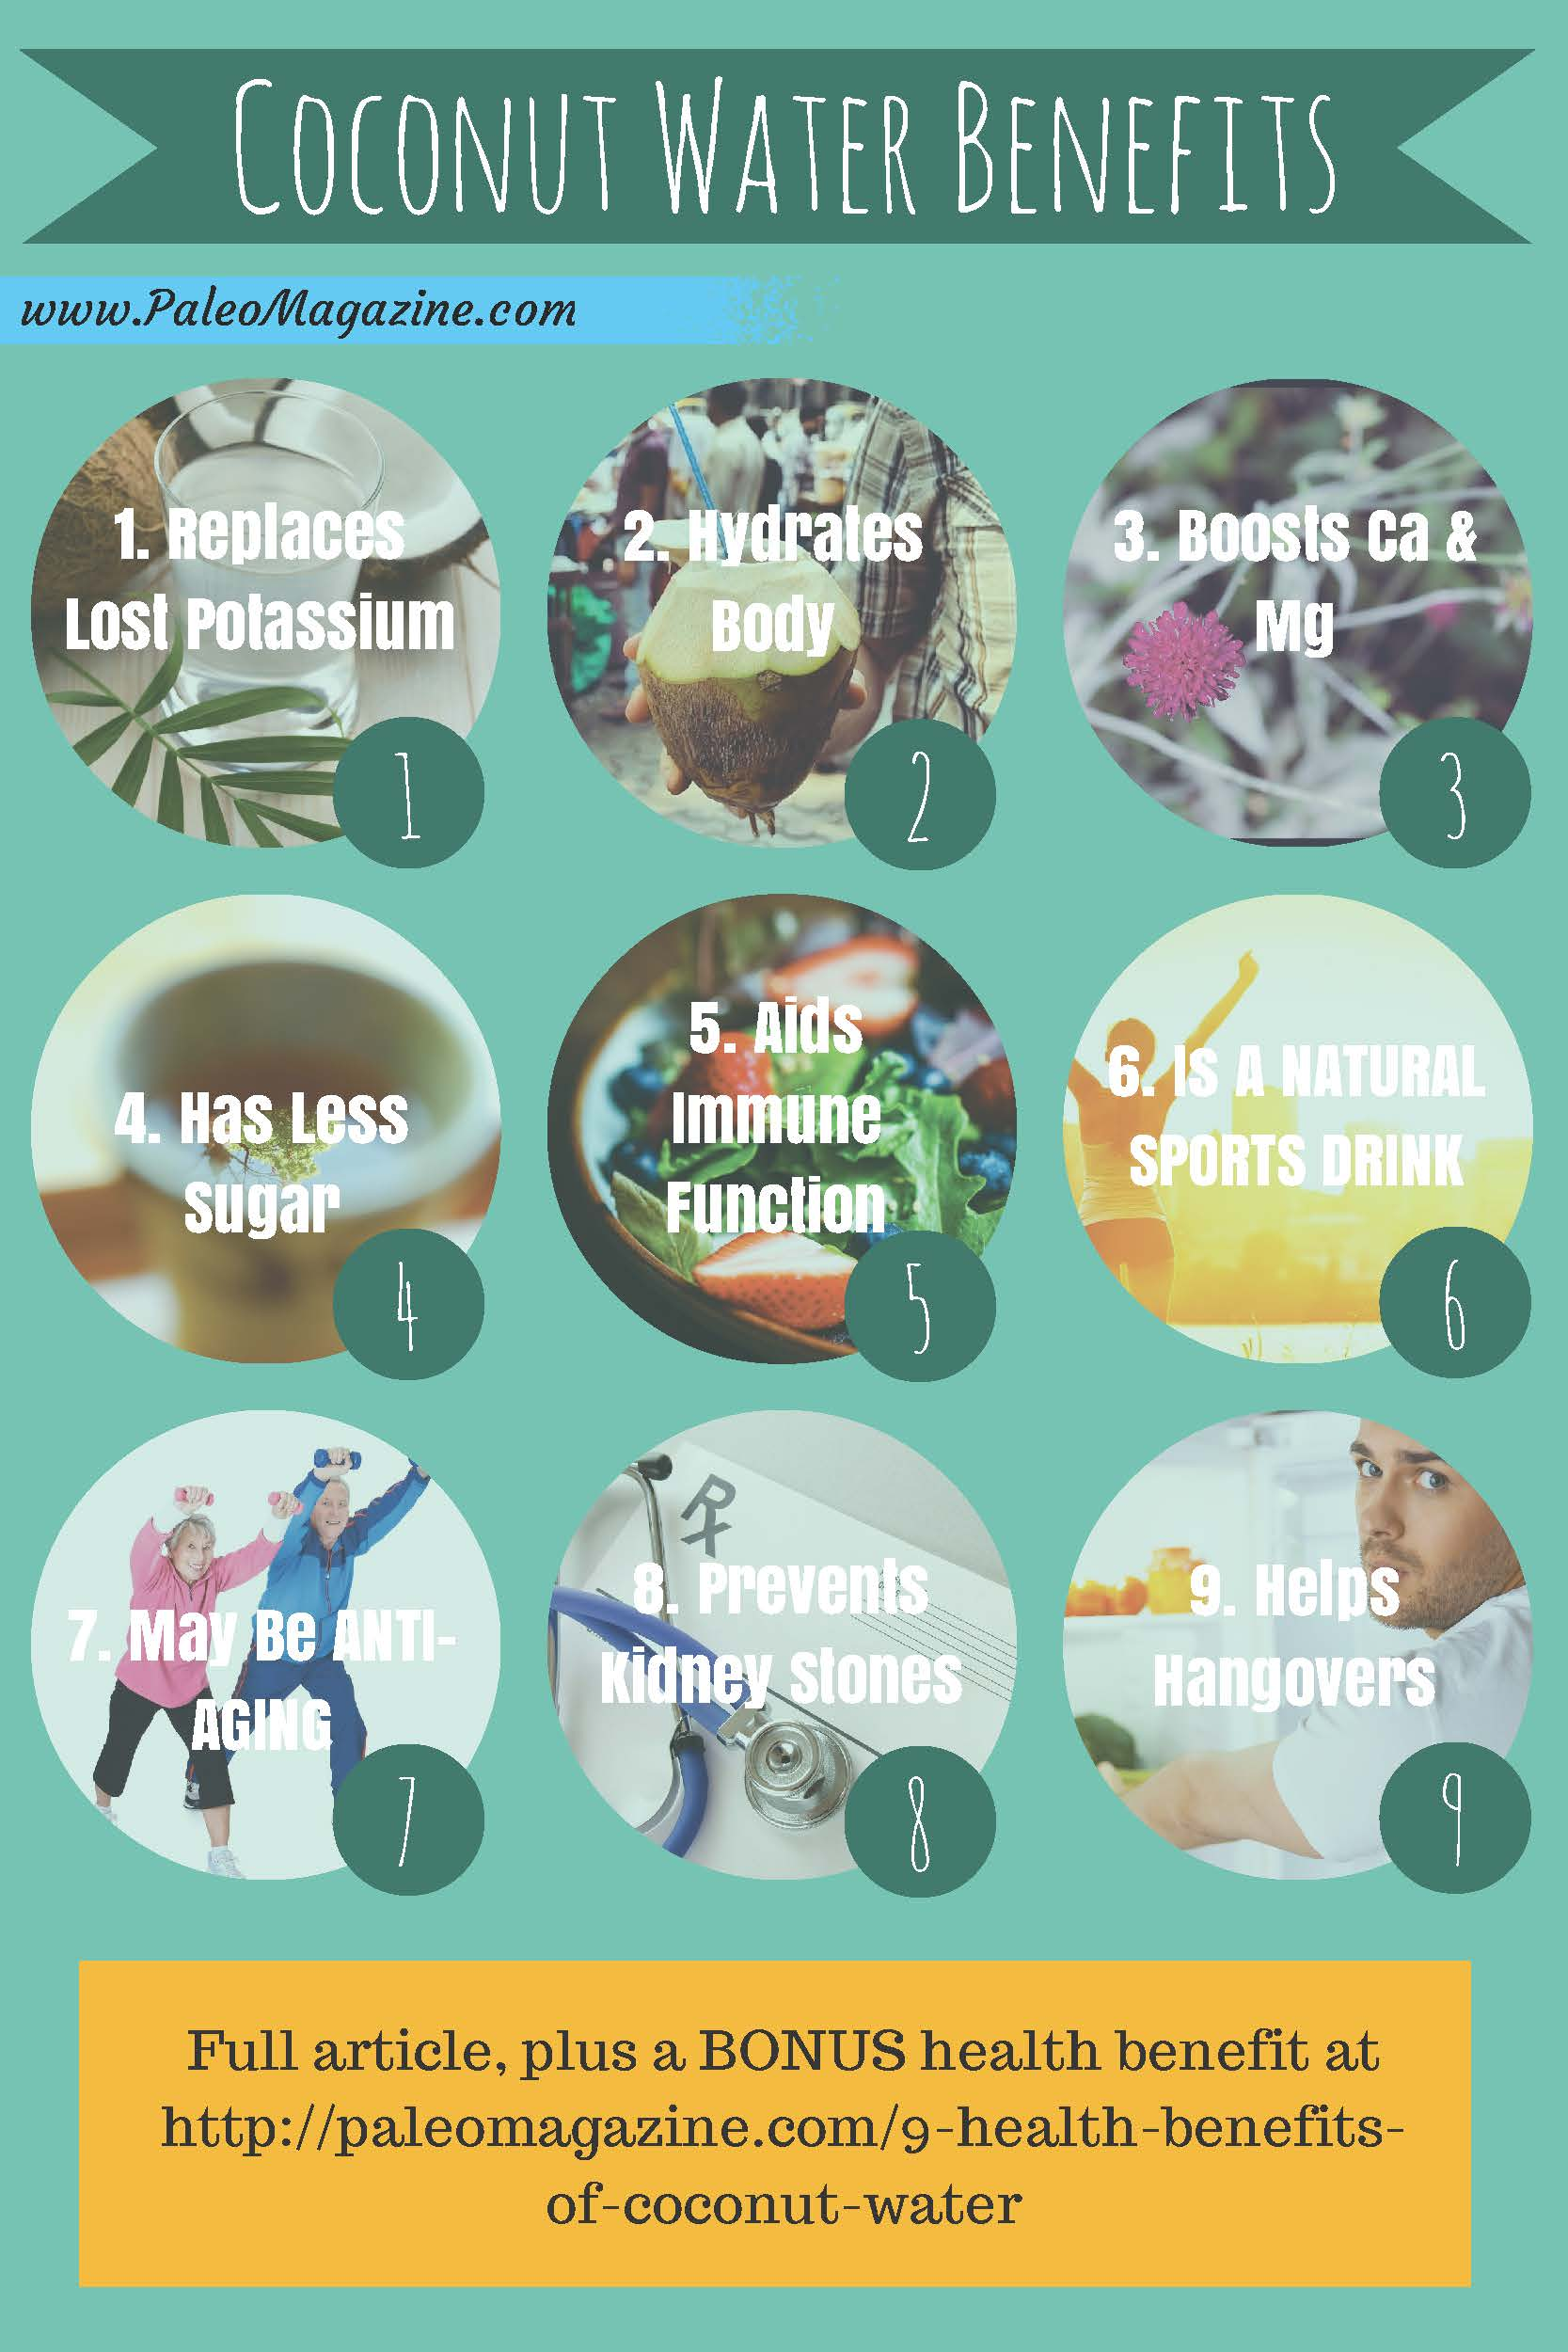 9 benefits of coconut water infographic from paleo living magazine